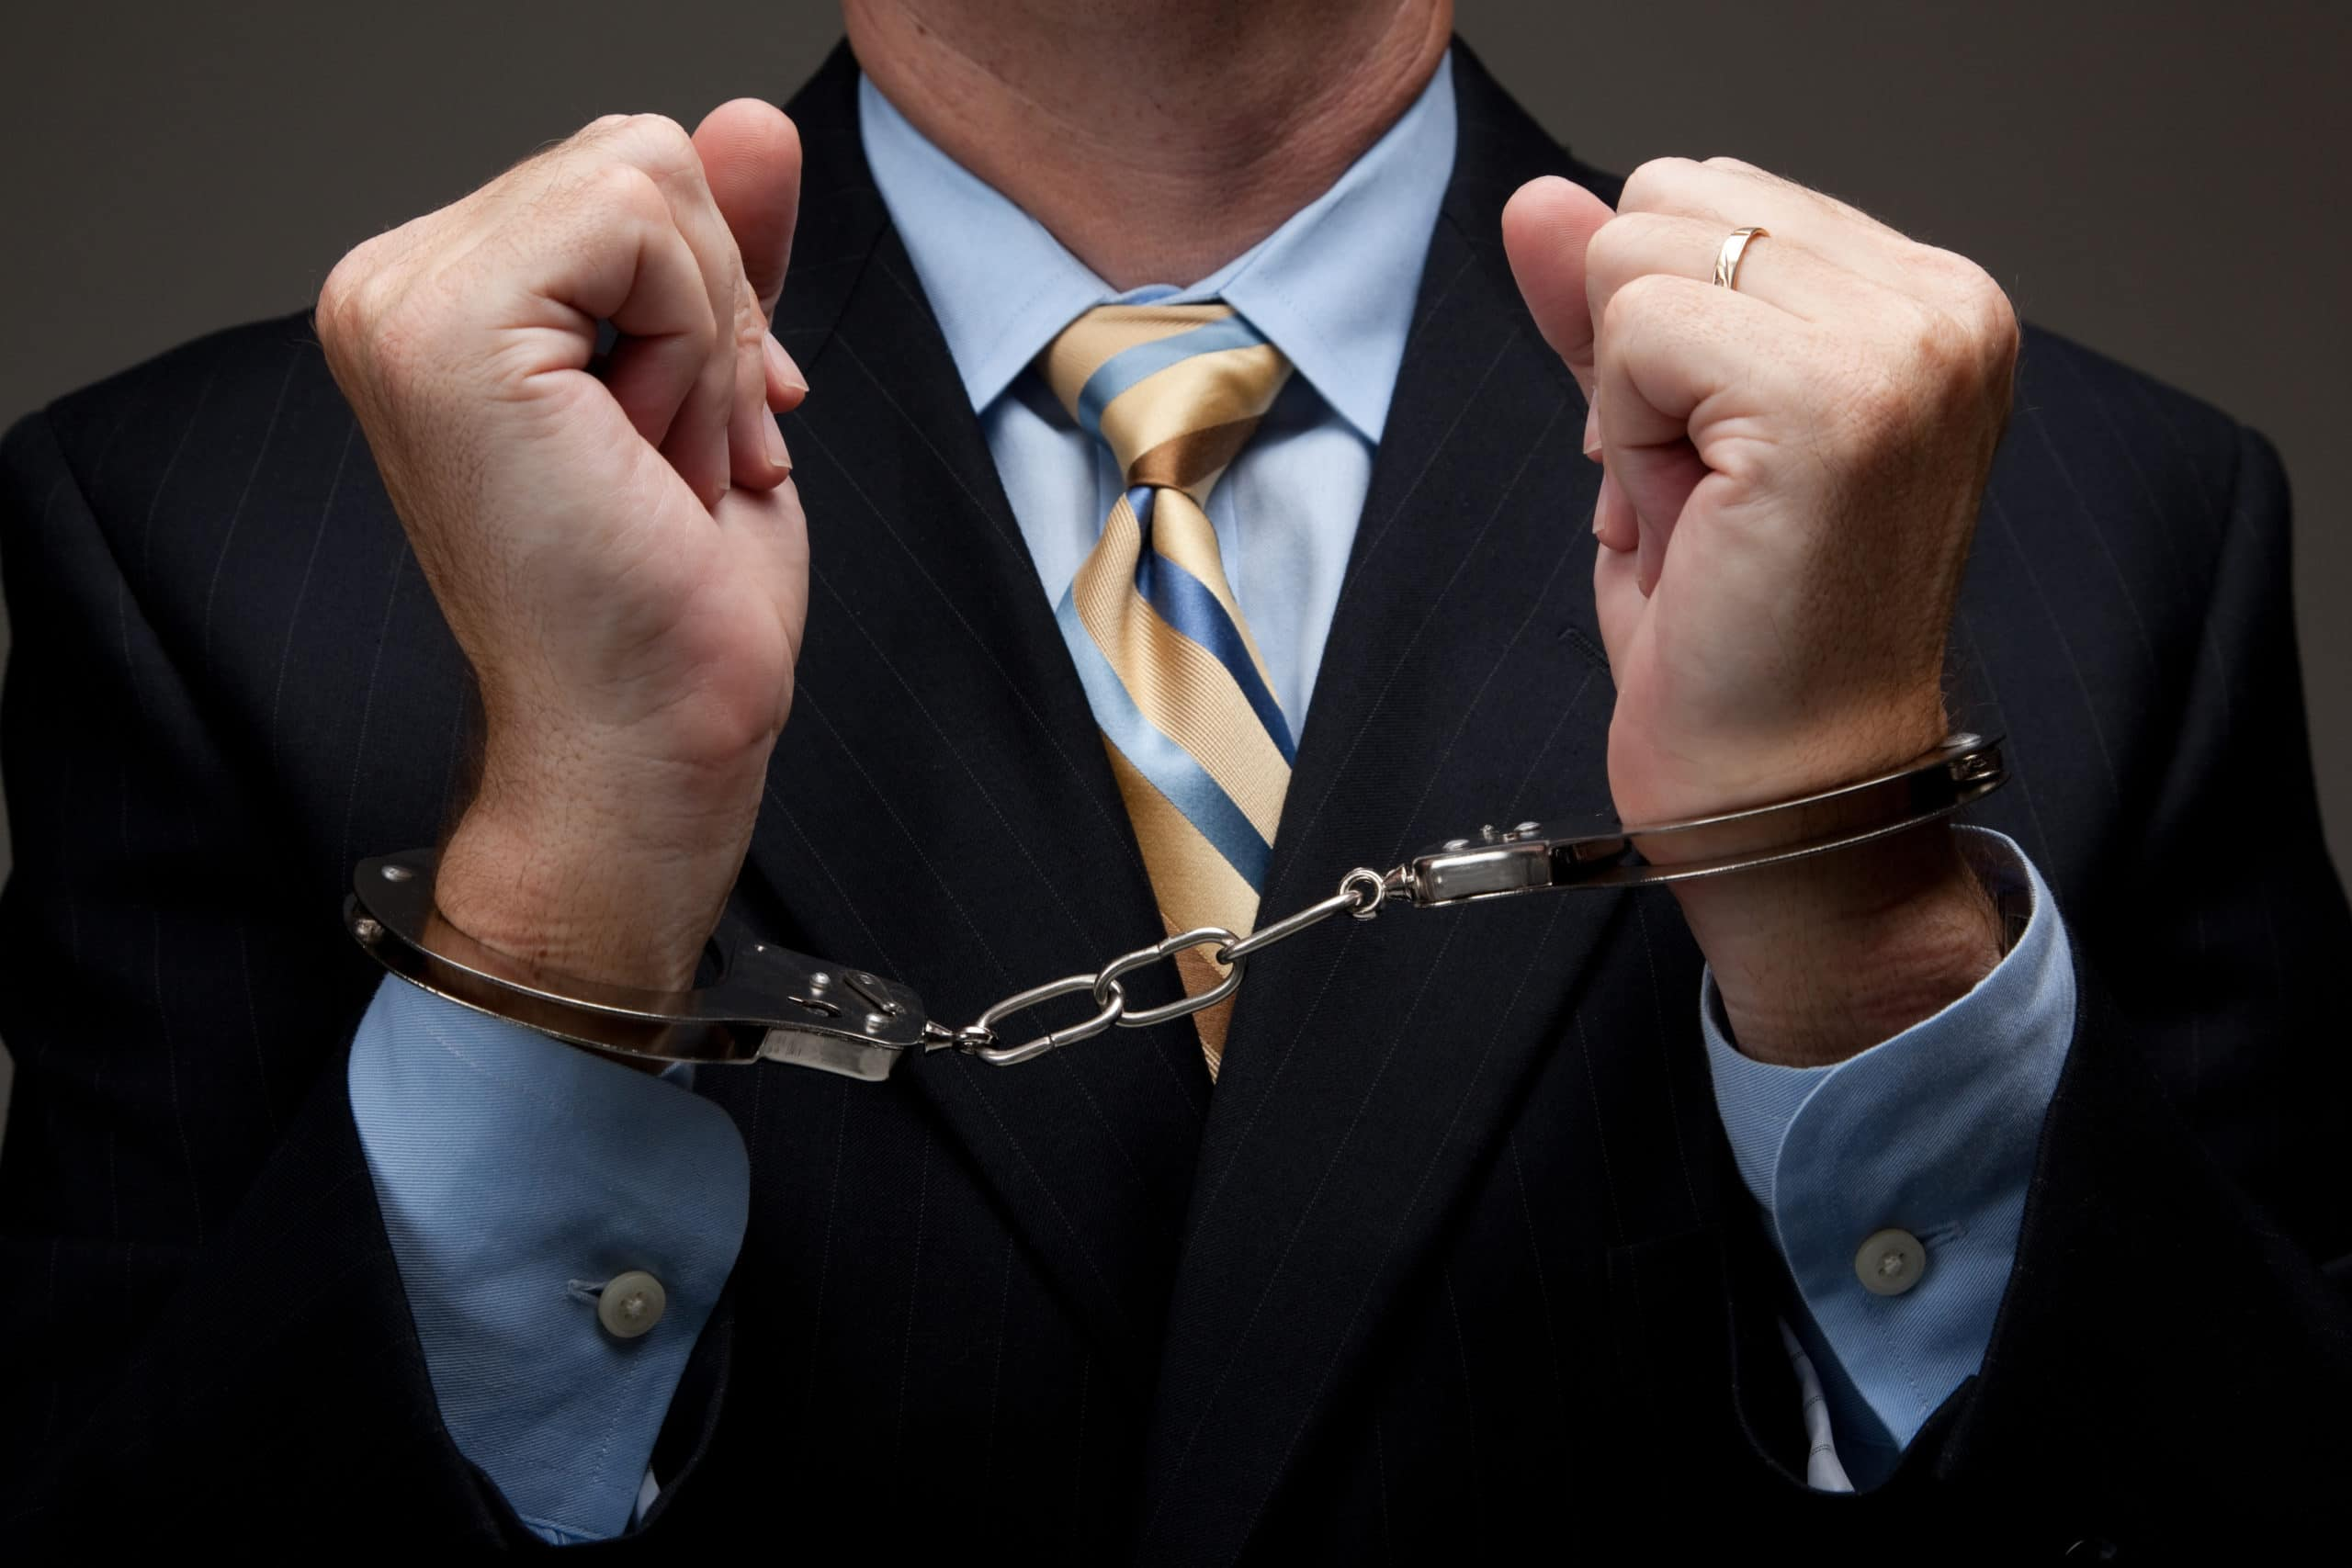 White,Collar,Criminal,In,A,Business,Suit,And,Handcuffs